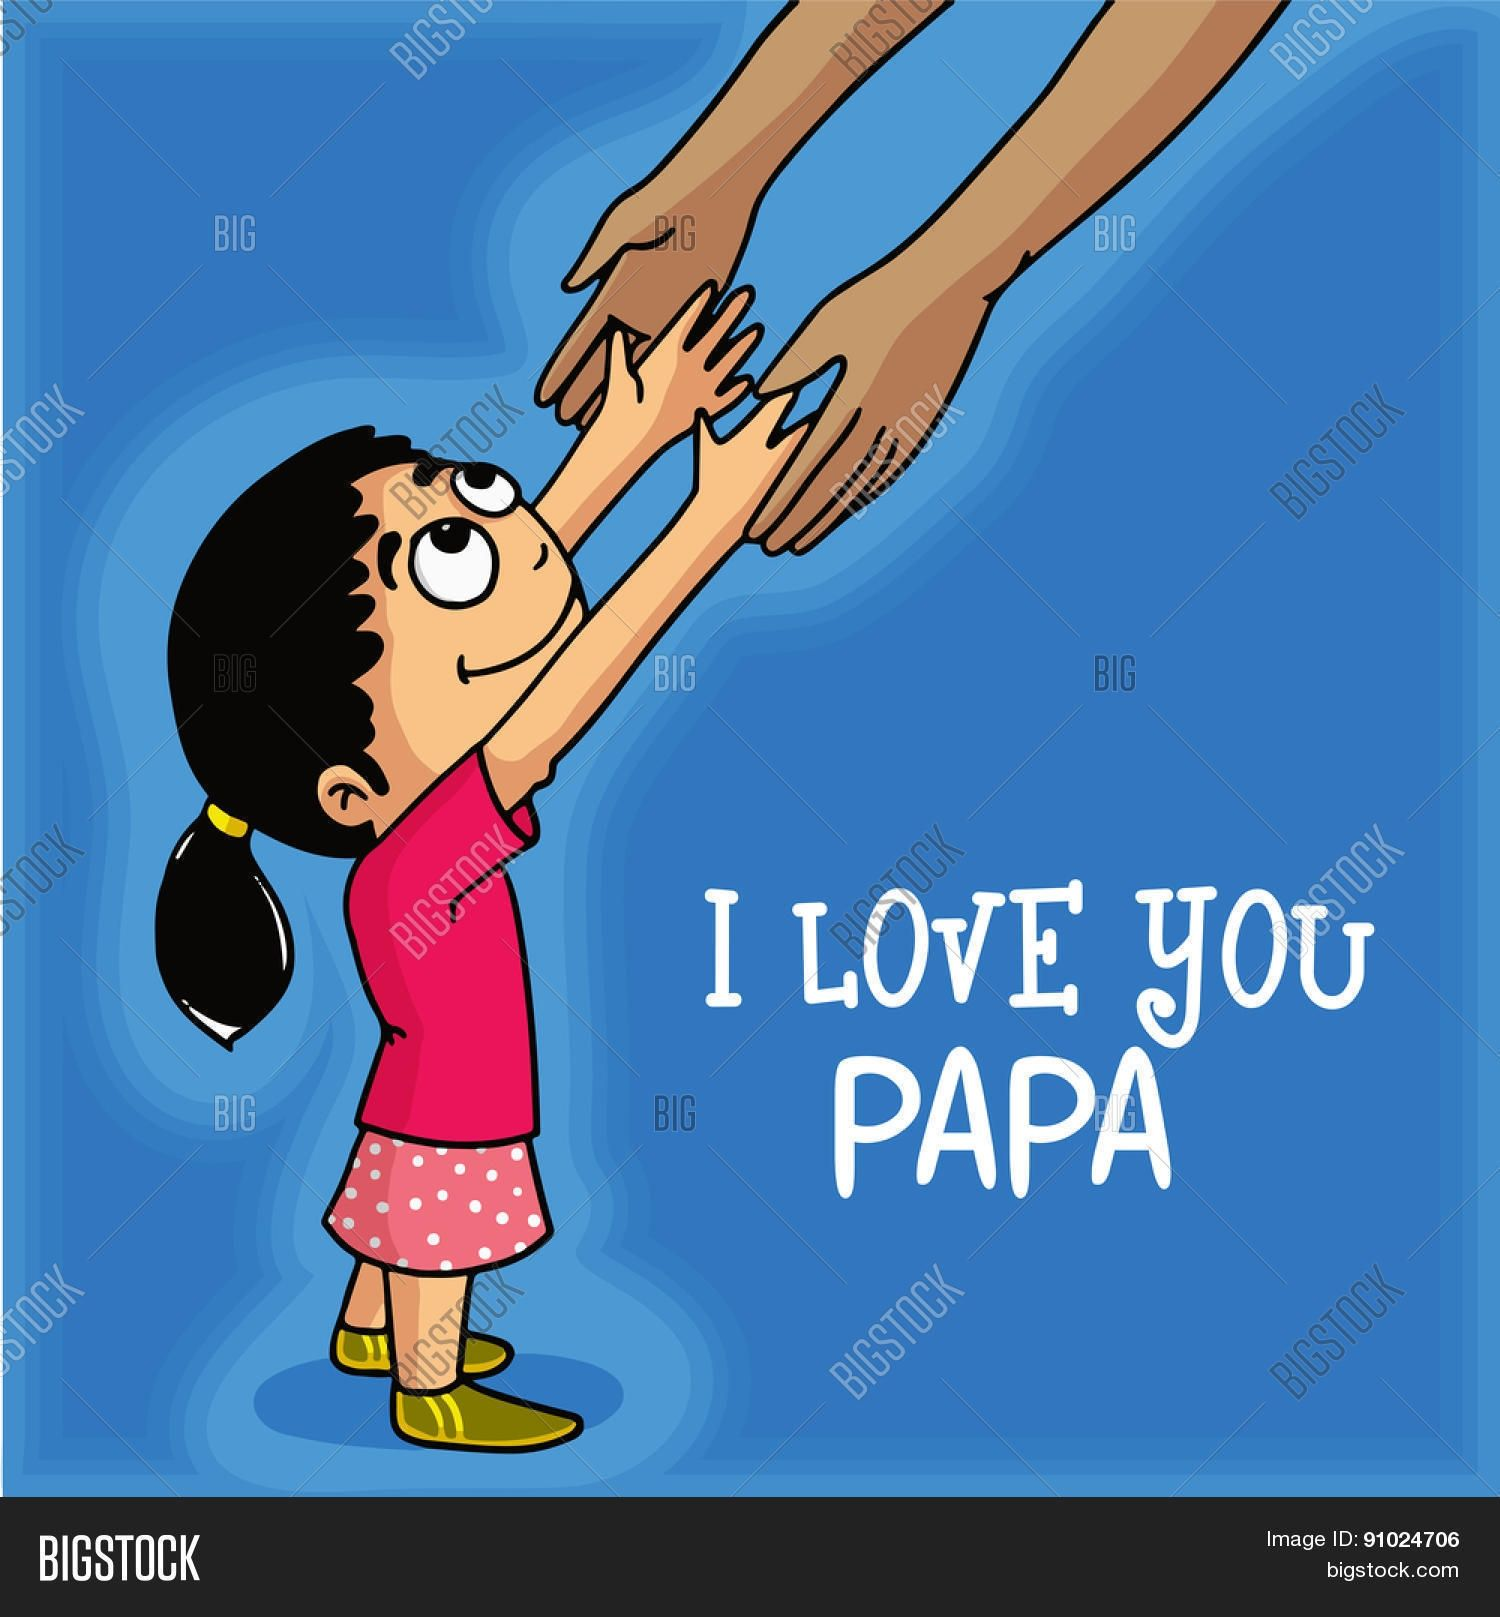 i love you papa wallpapers - photo #16